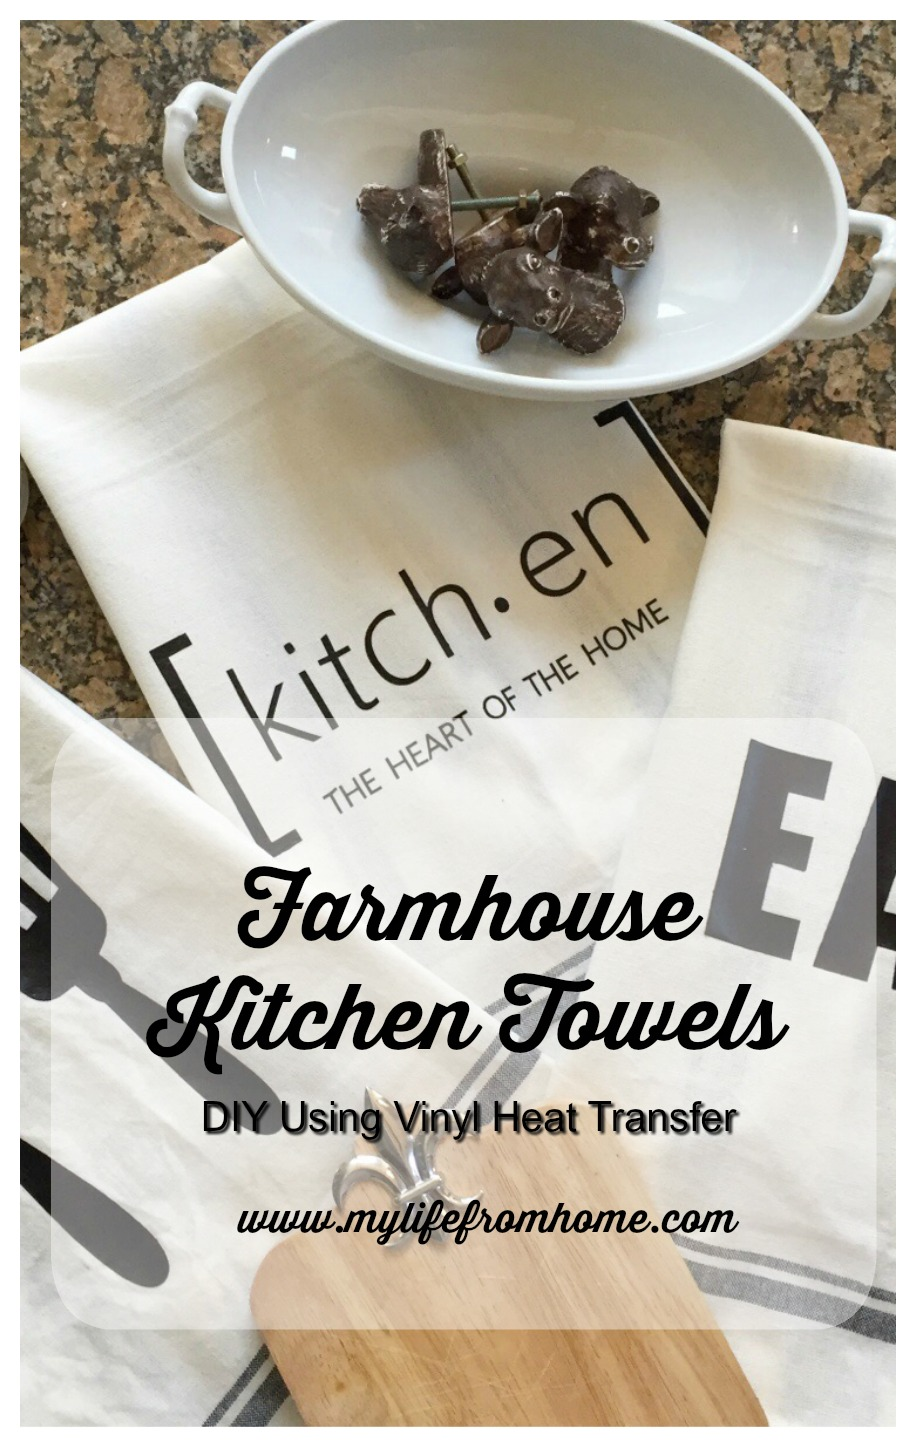 Craft Ideas-Silhouette Challenge: Kitchen Towels | My Life From Home